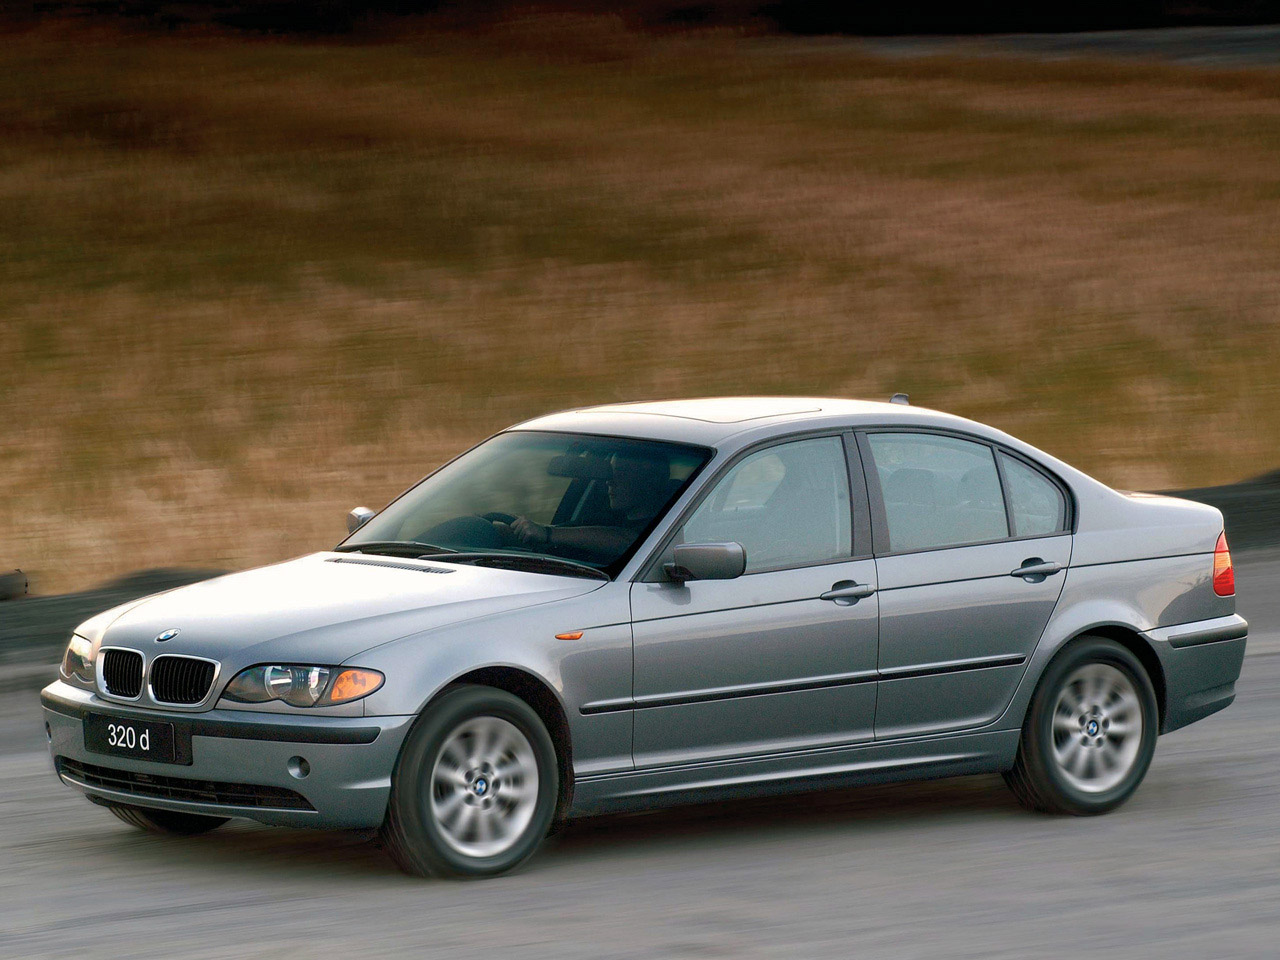 BMW 3 series 320d 2001 photo - 4